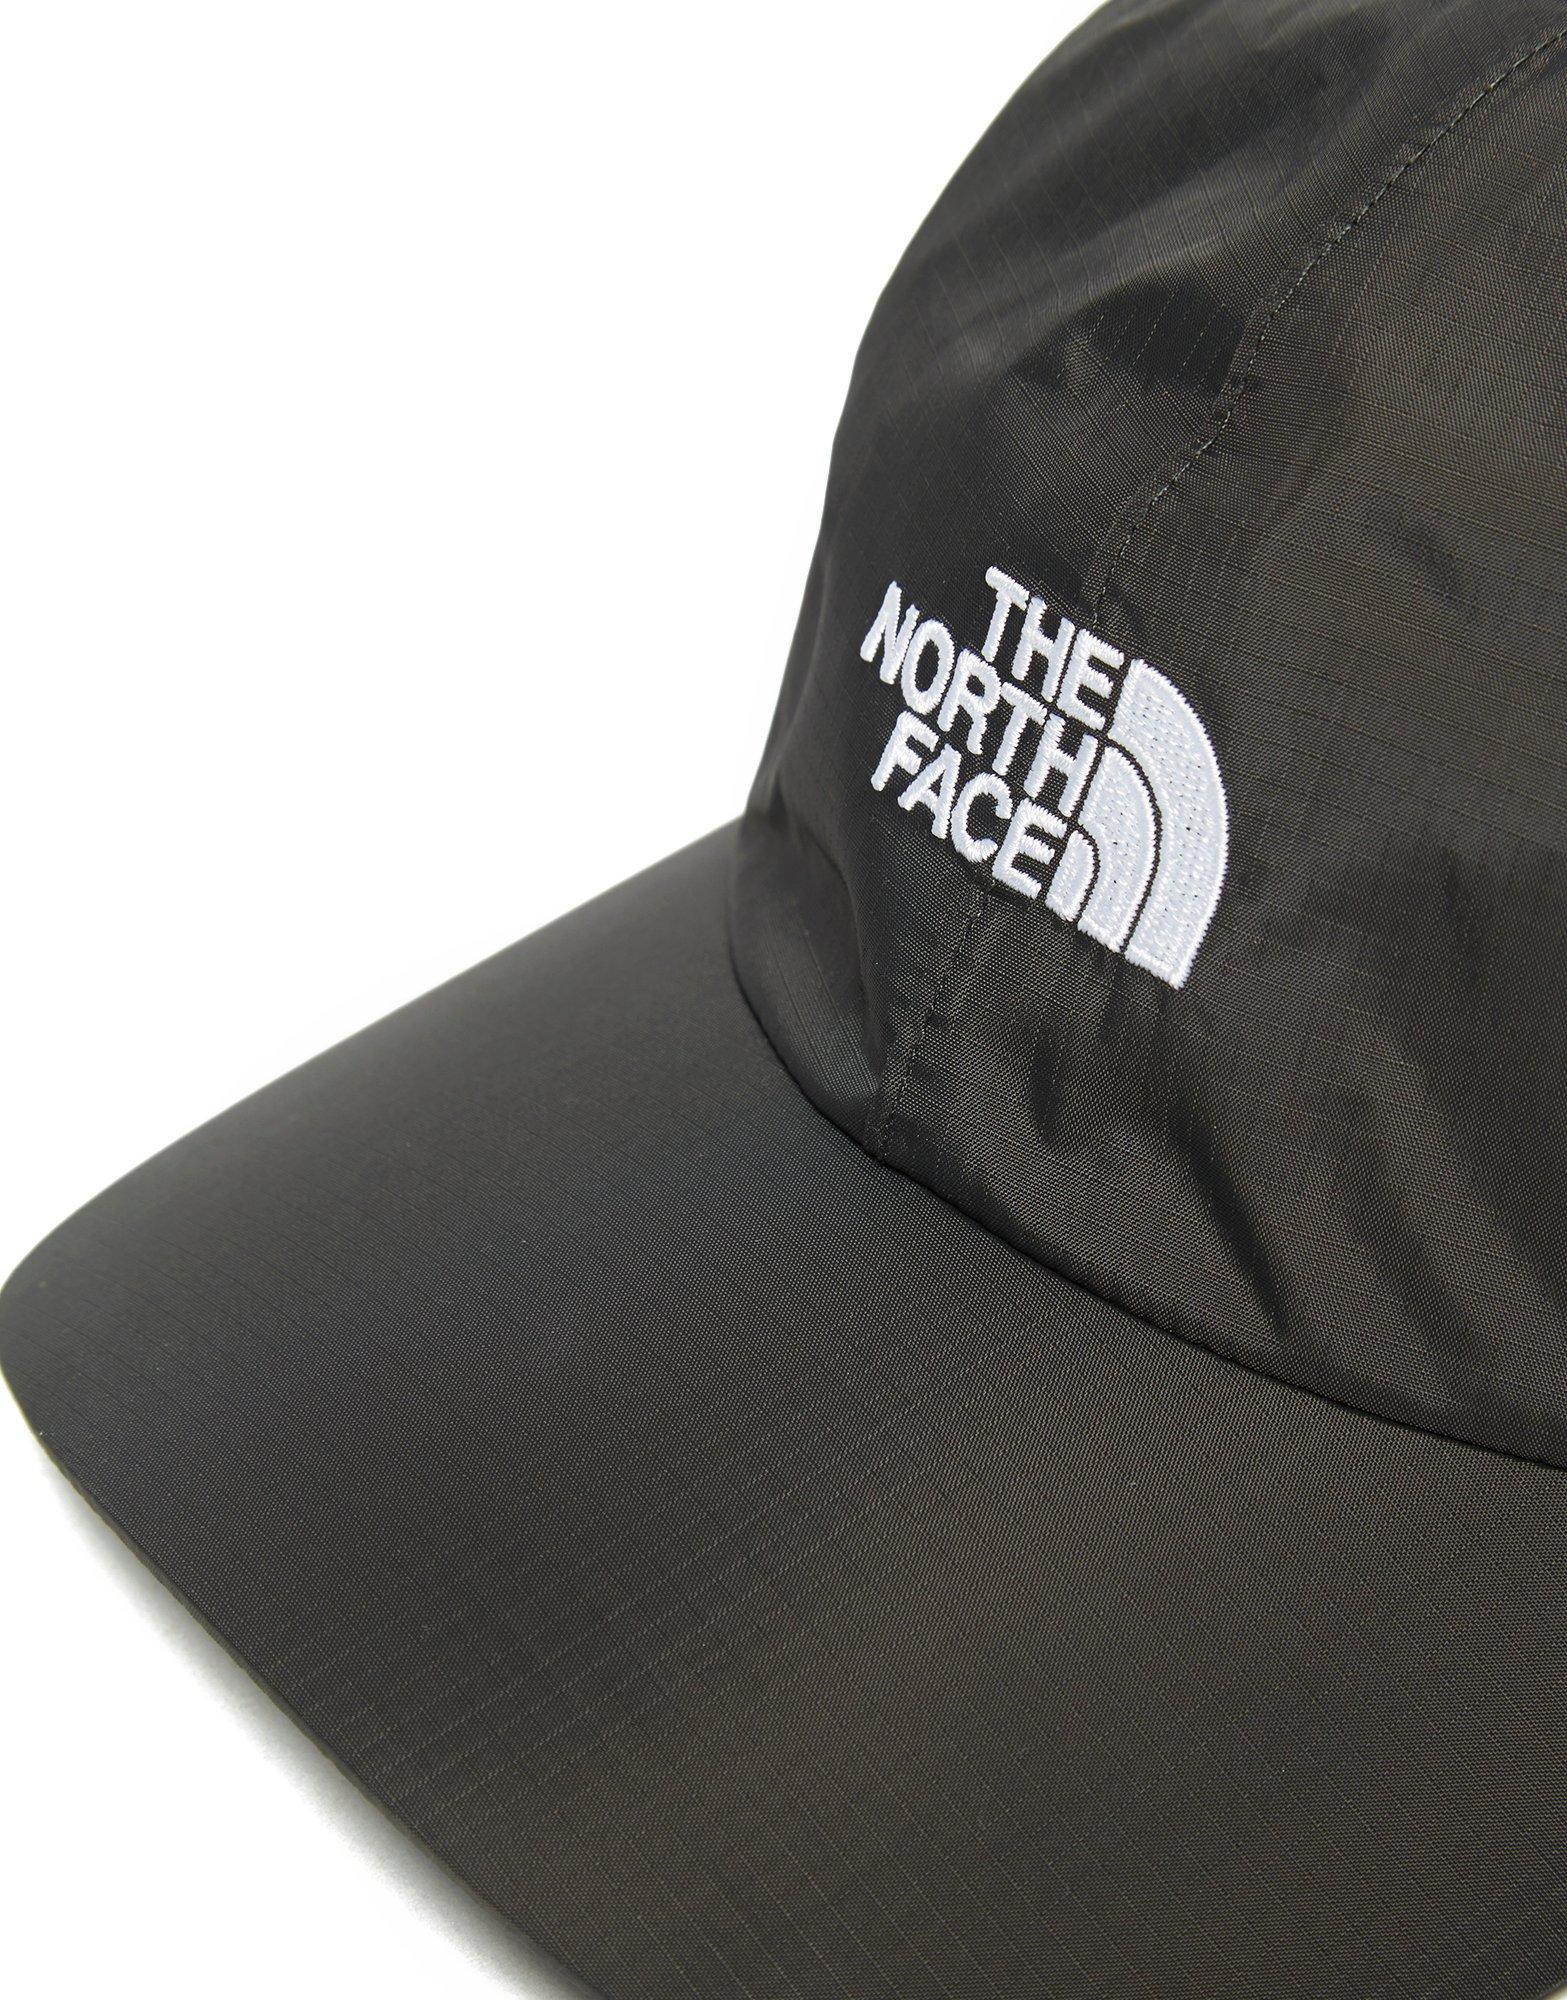 e2d16d60656e71 North Face Hats Jd Sports - Latest and Best Hat Models